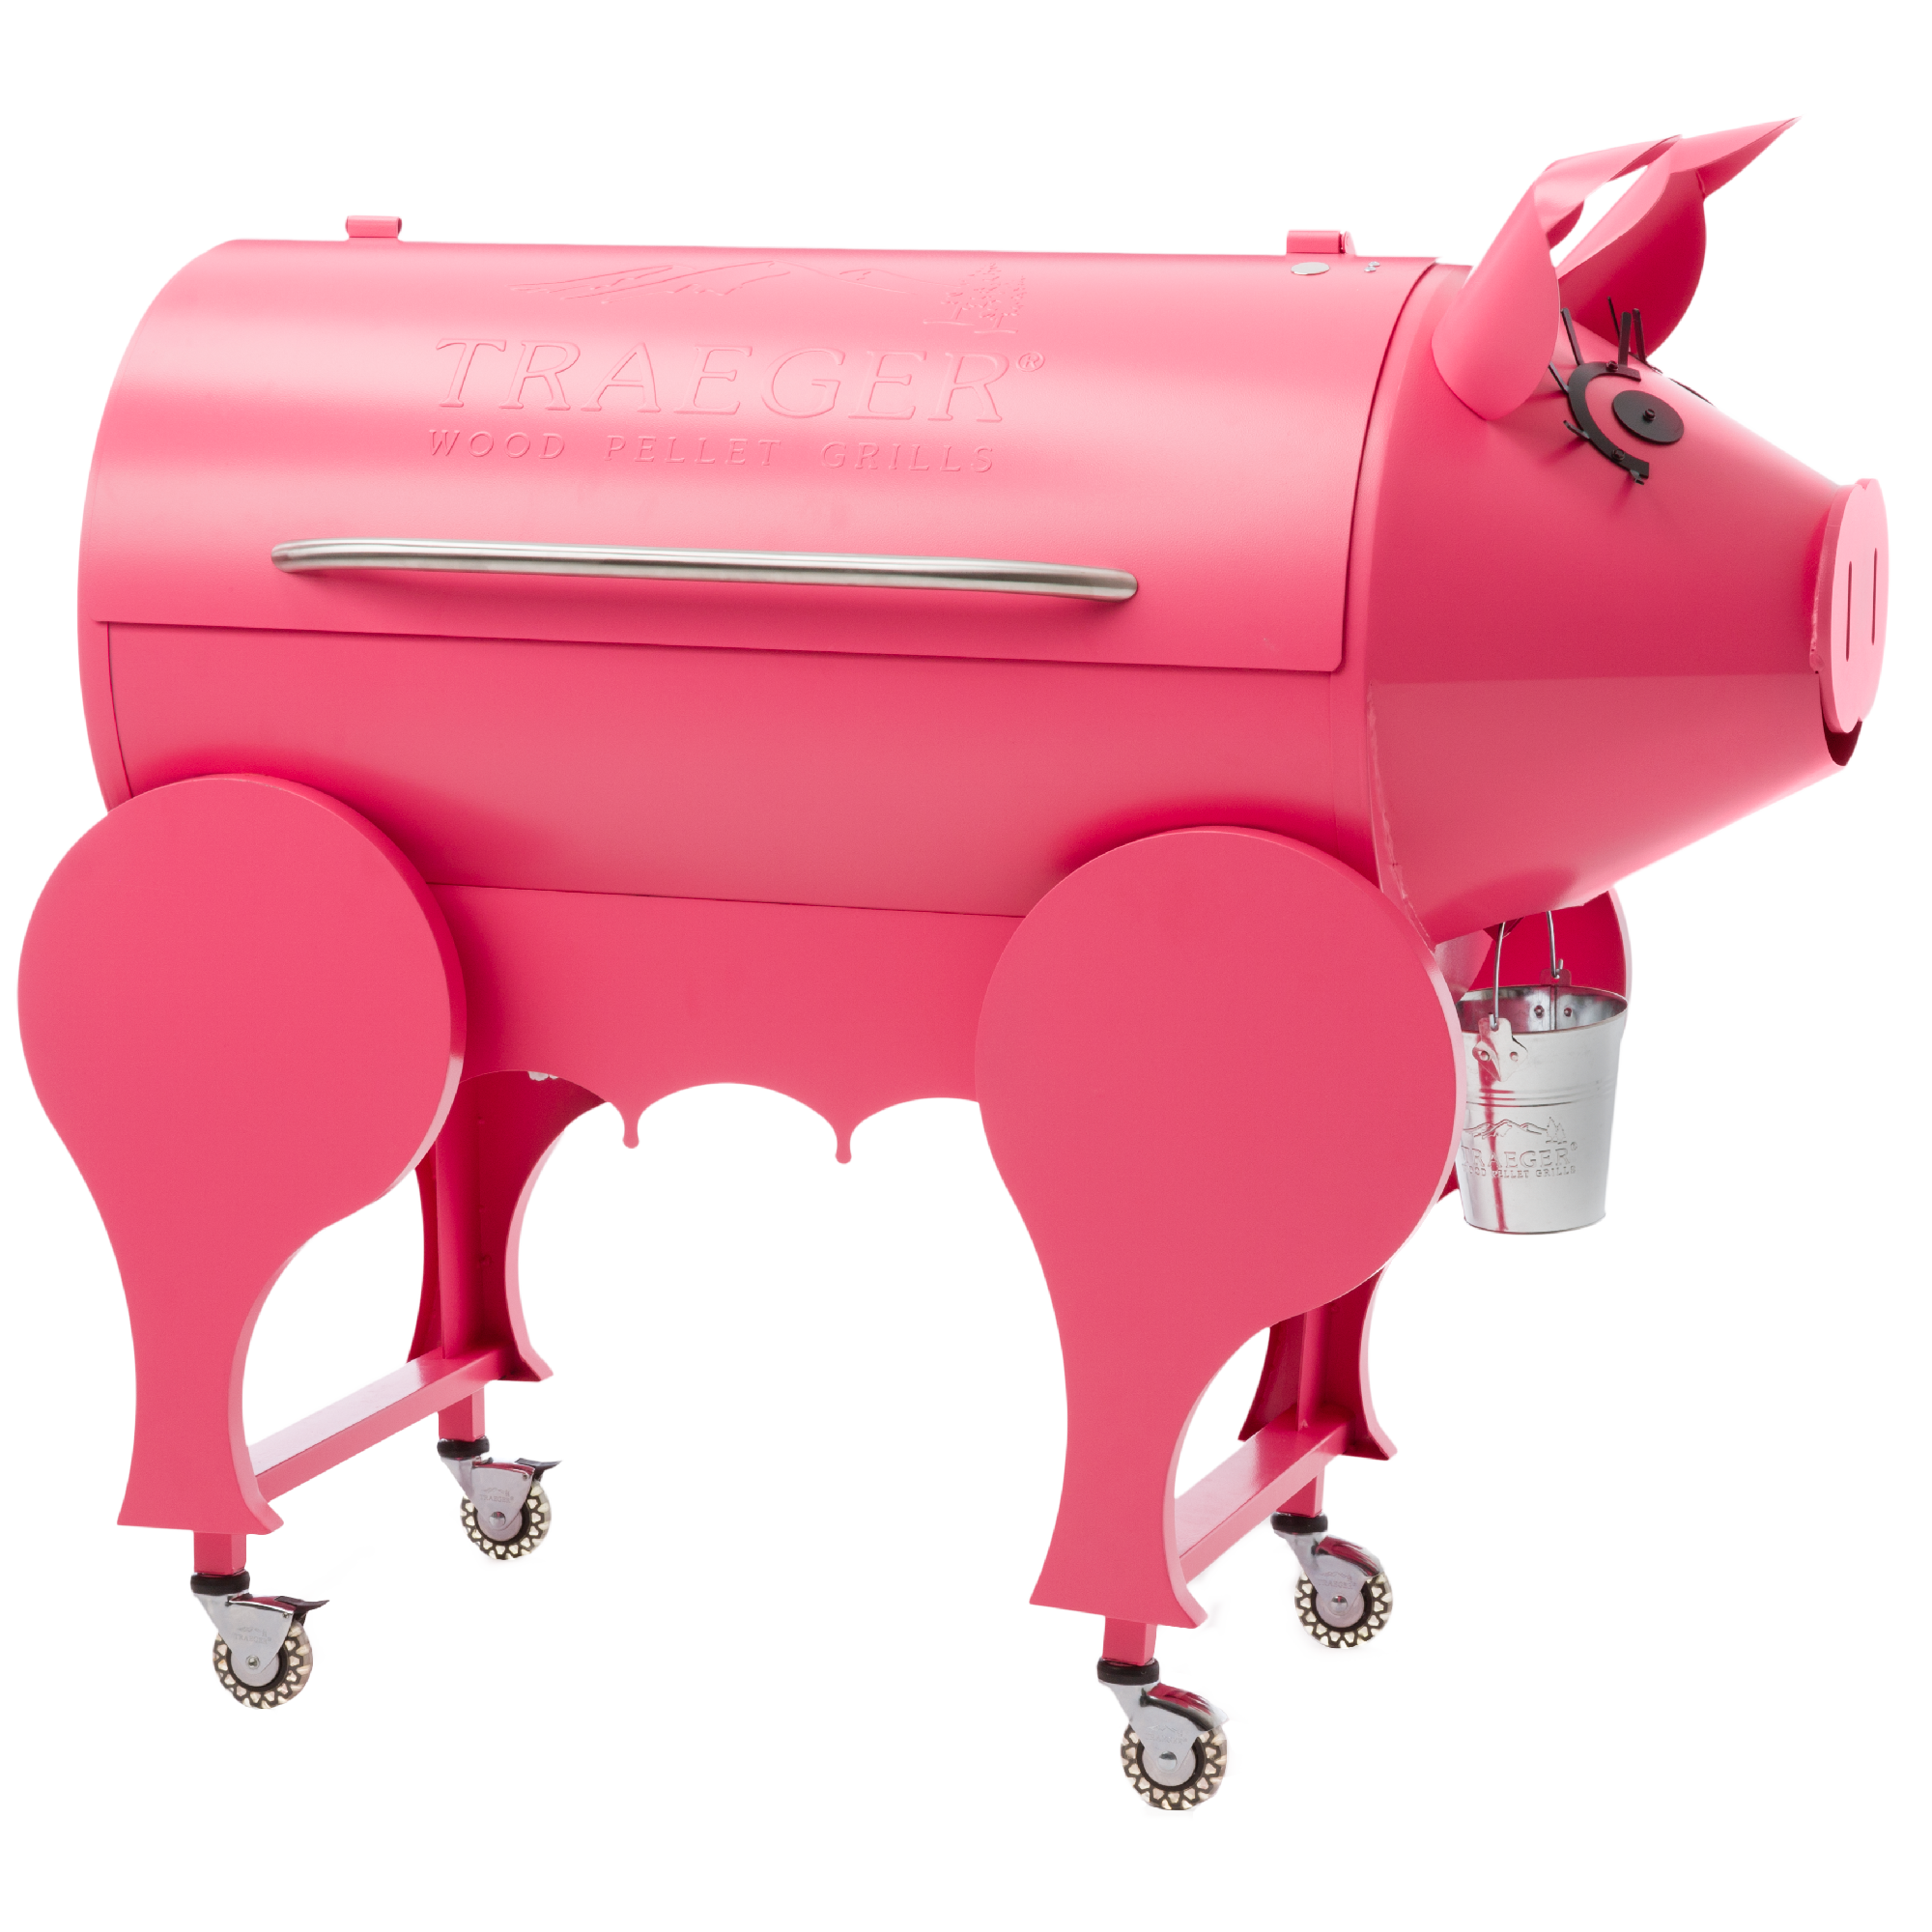 2000x2000 Pink Lil' Pig Pellet Grill Traeger Wood Fired Grills